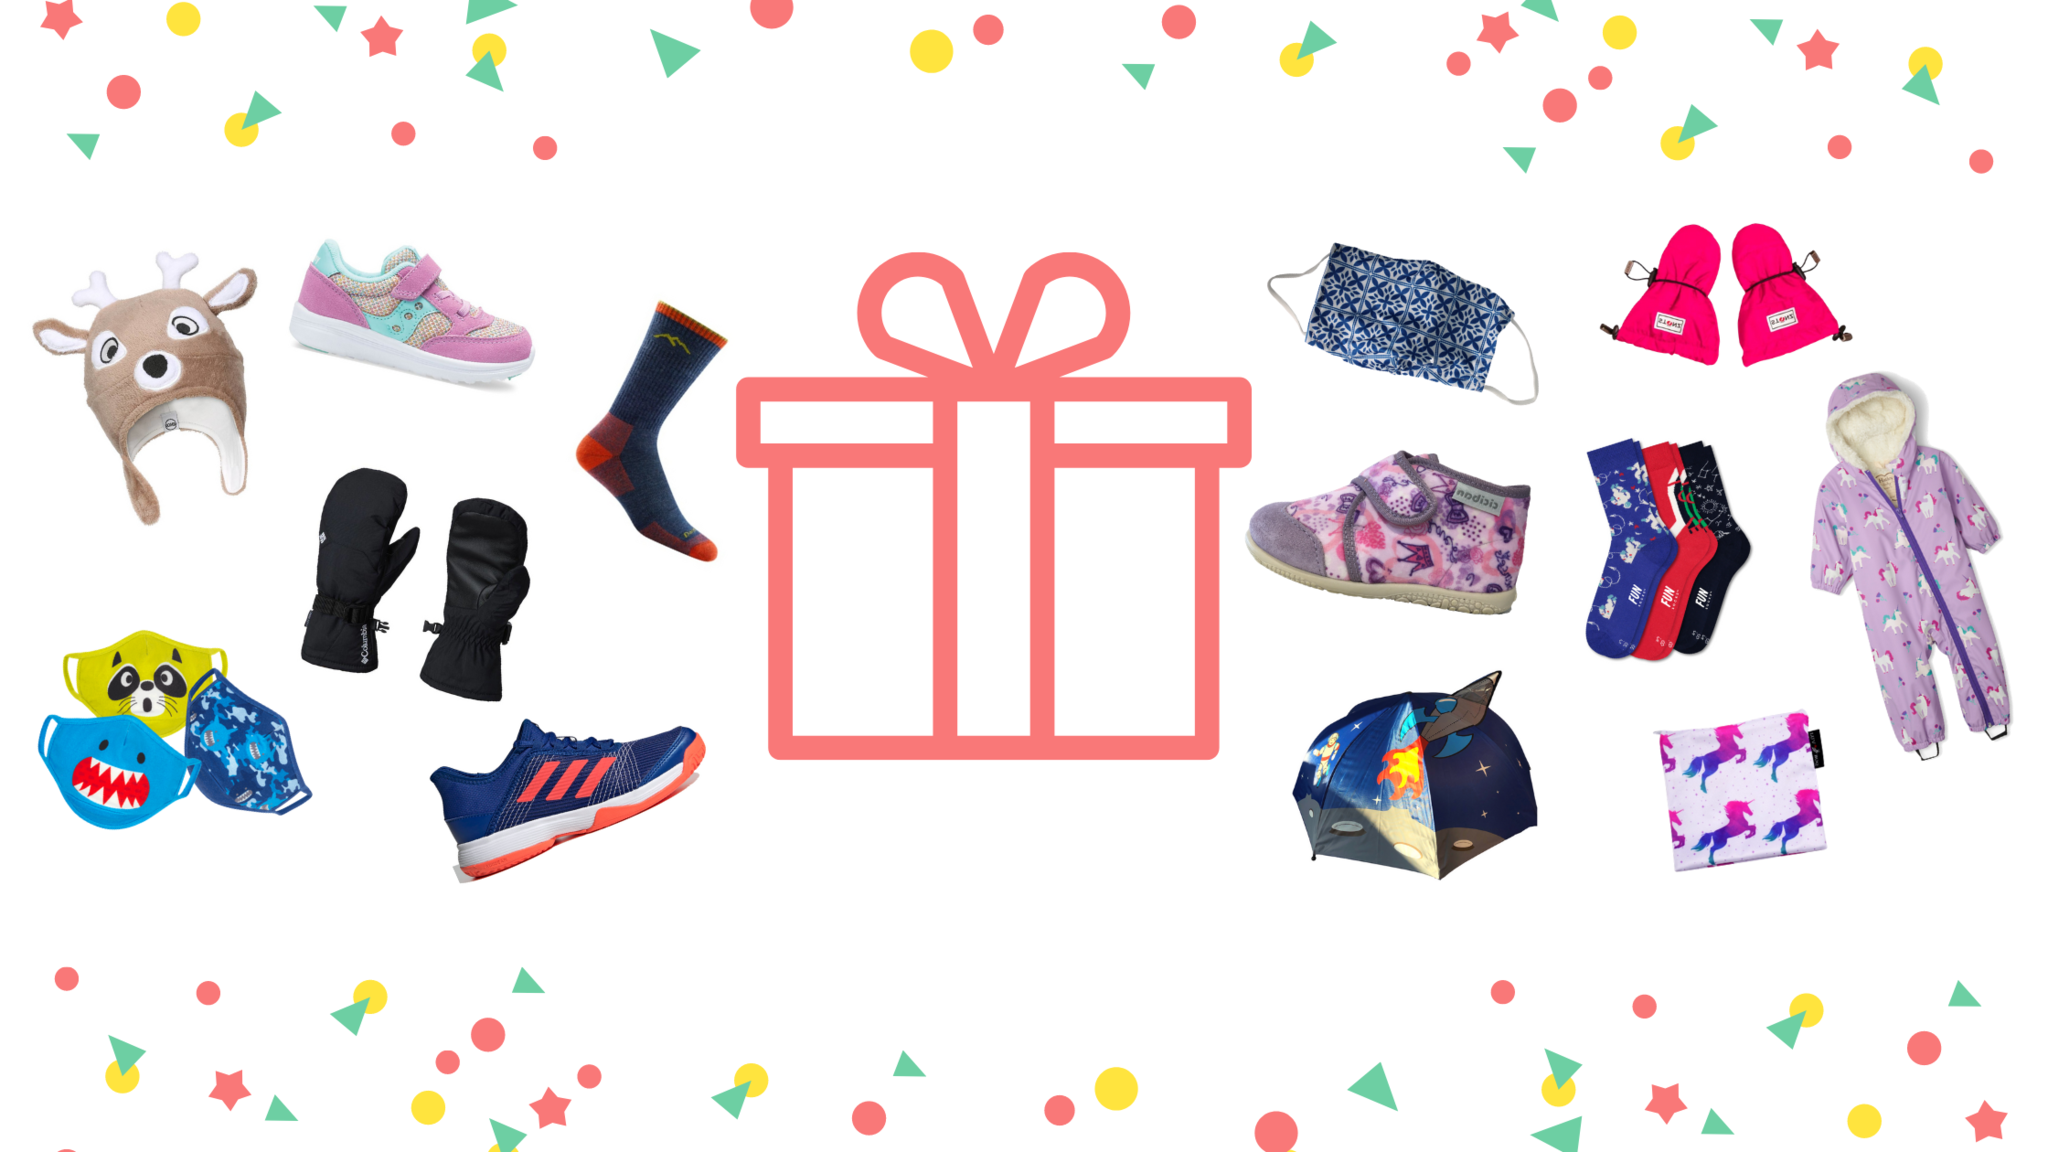 KKSTL Holiday Gift Guide 2020 - Online Shopping Guide for Kids Gear